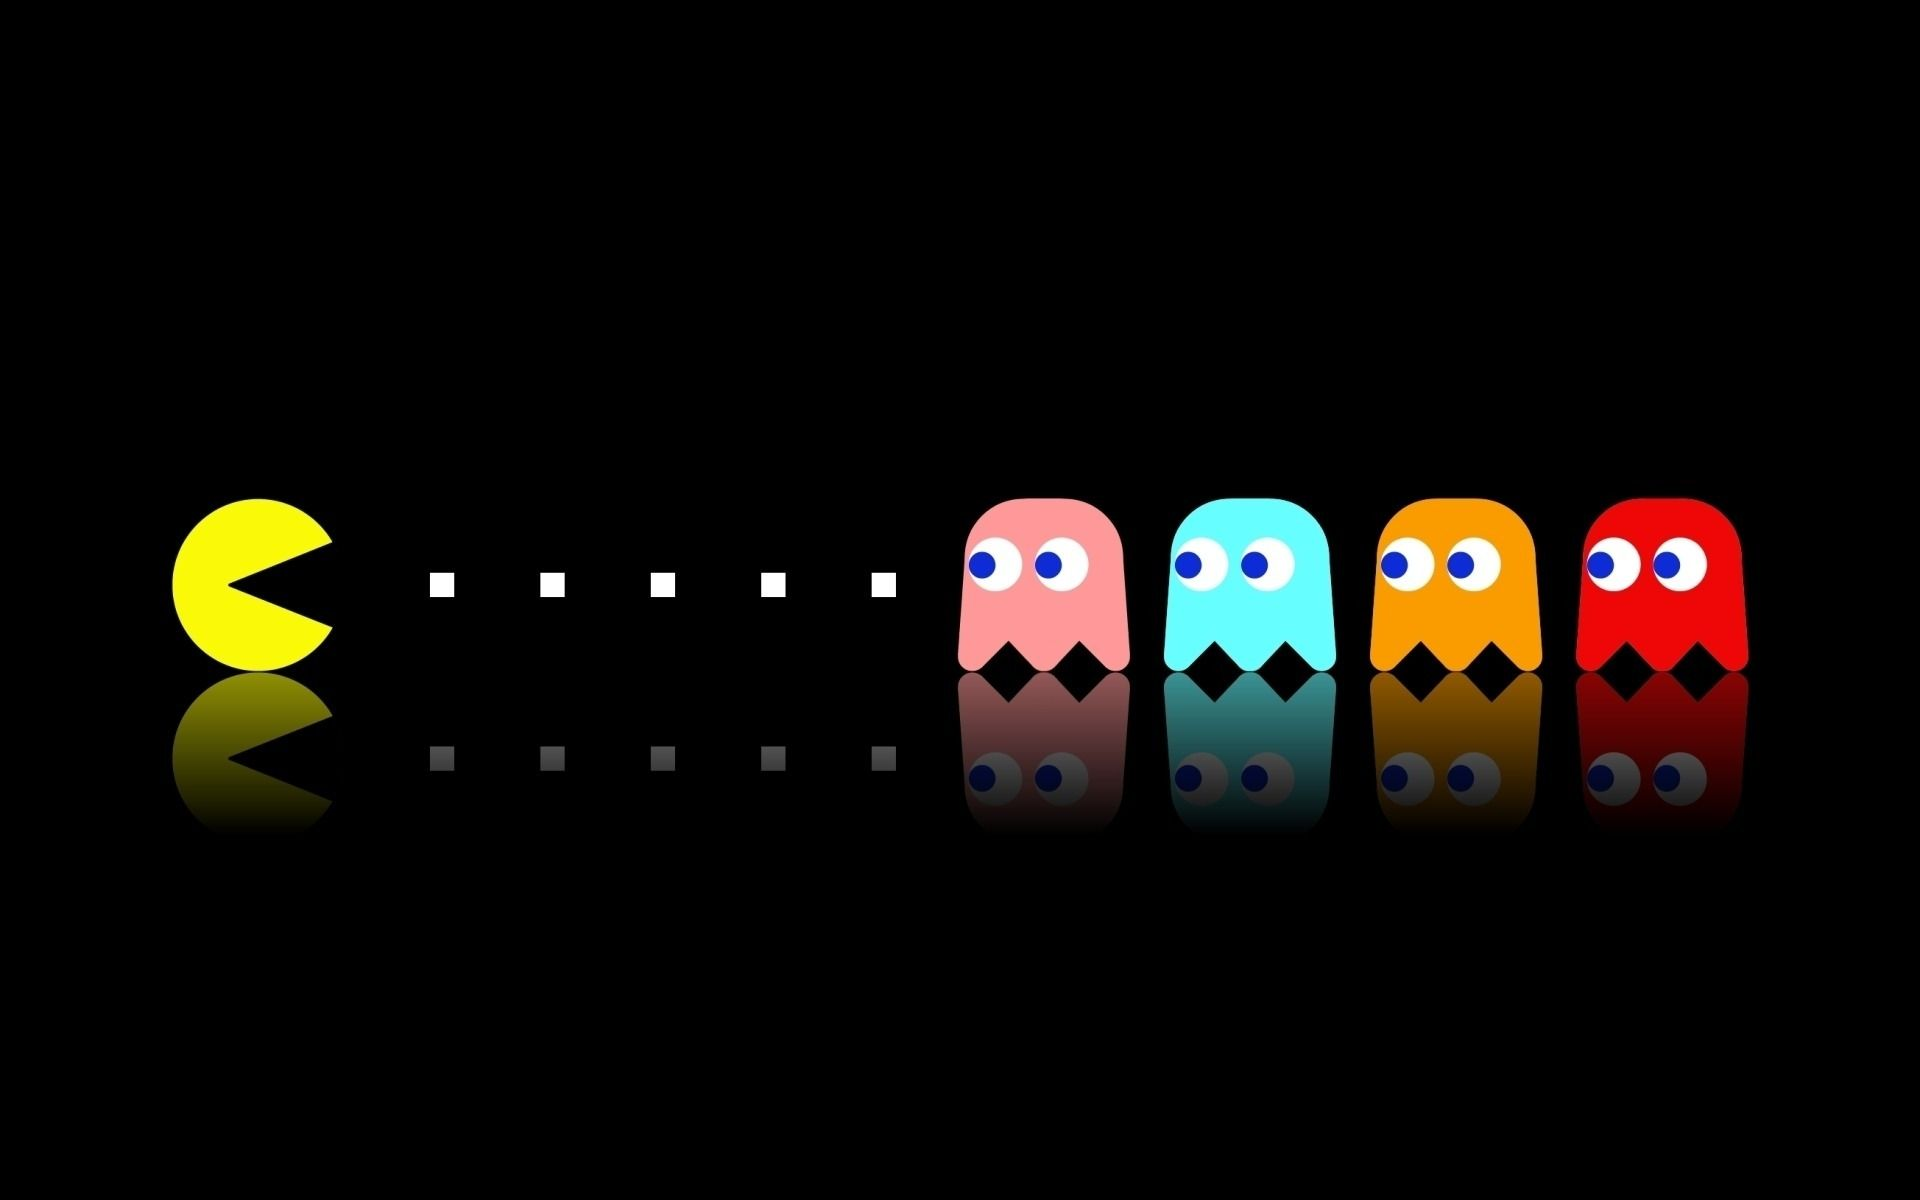 1920x1200 Pac-man dual screen wallpaper | Computer Wallpapers | Pinterest ...